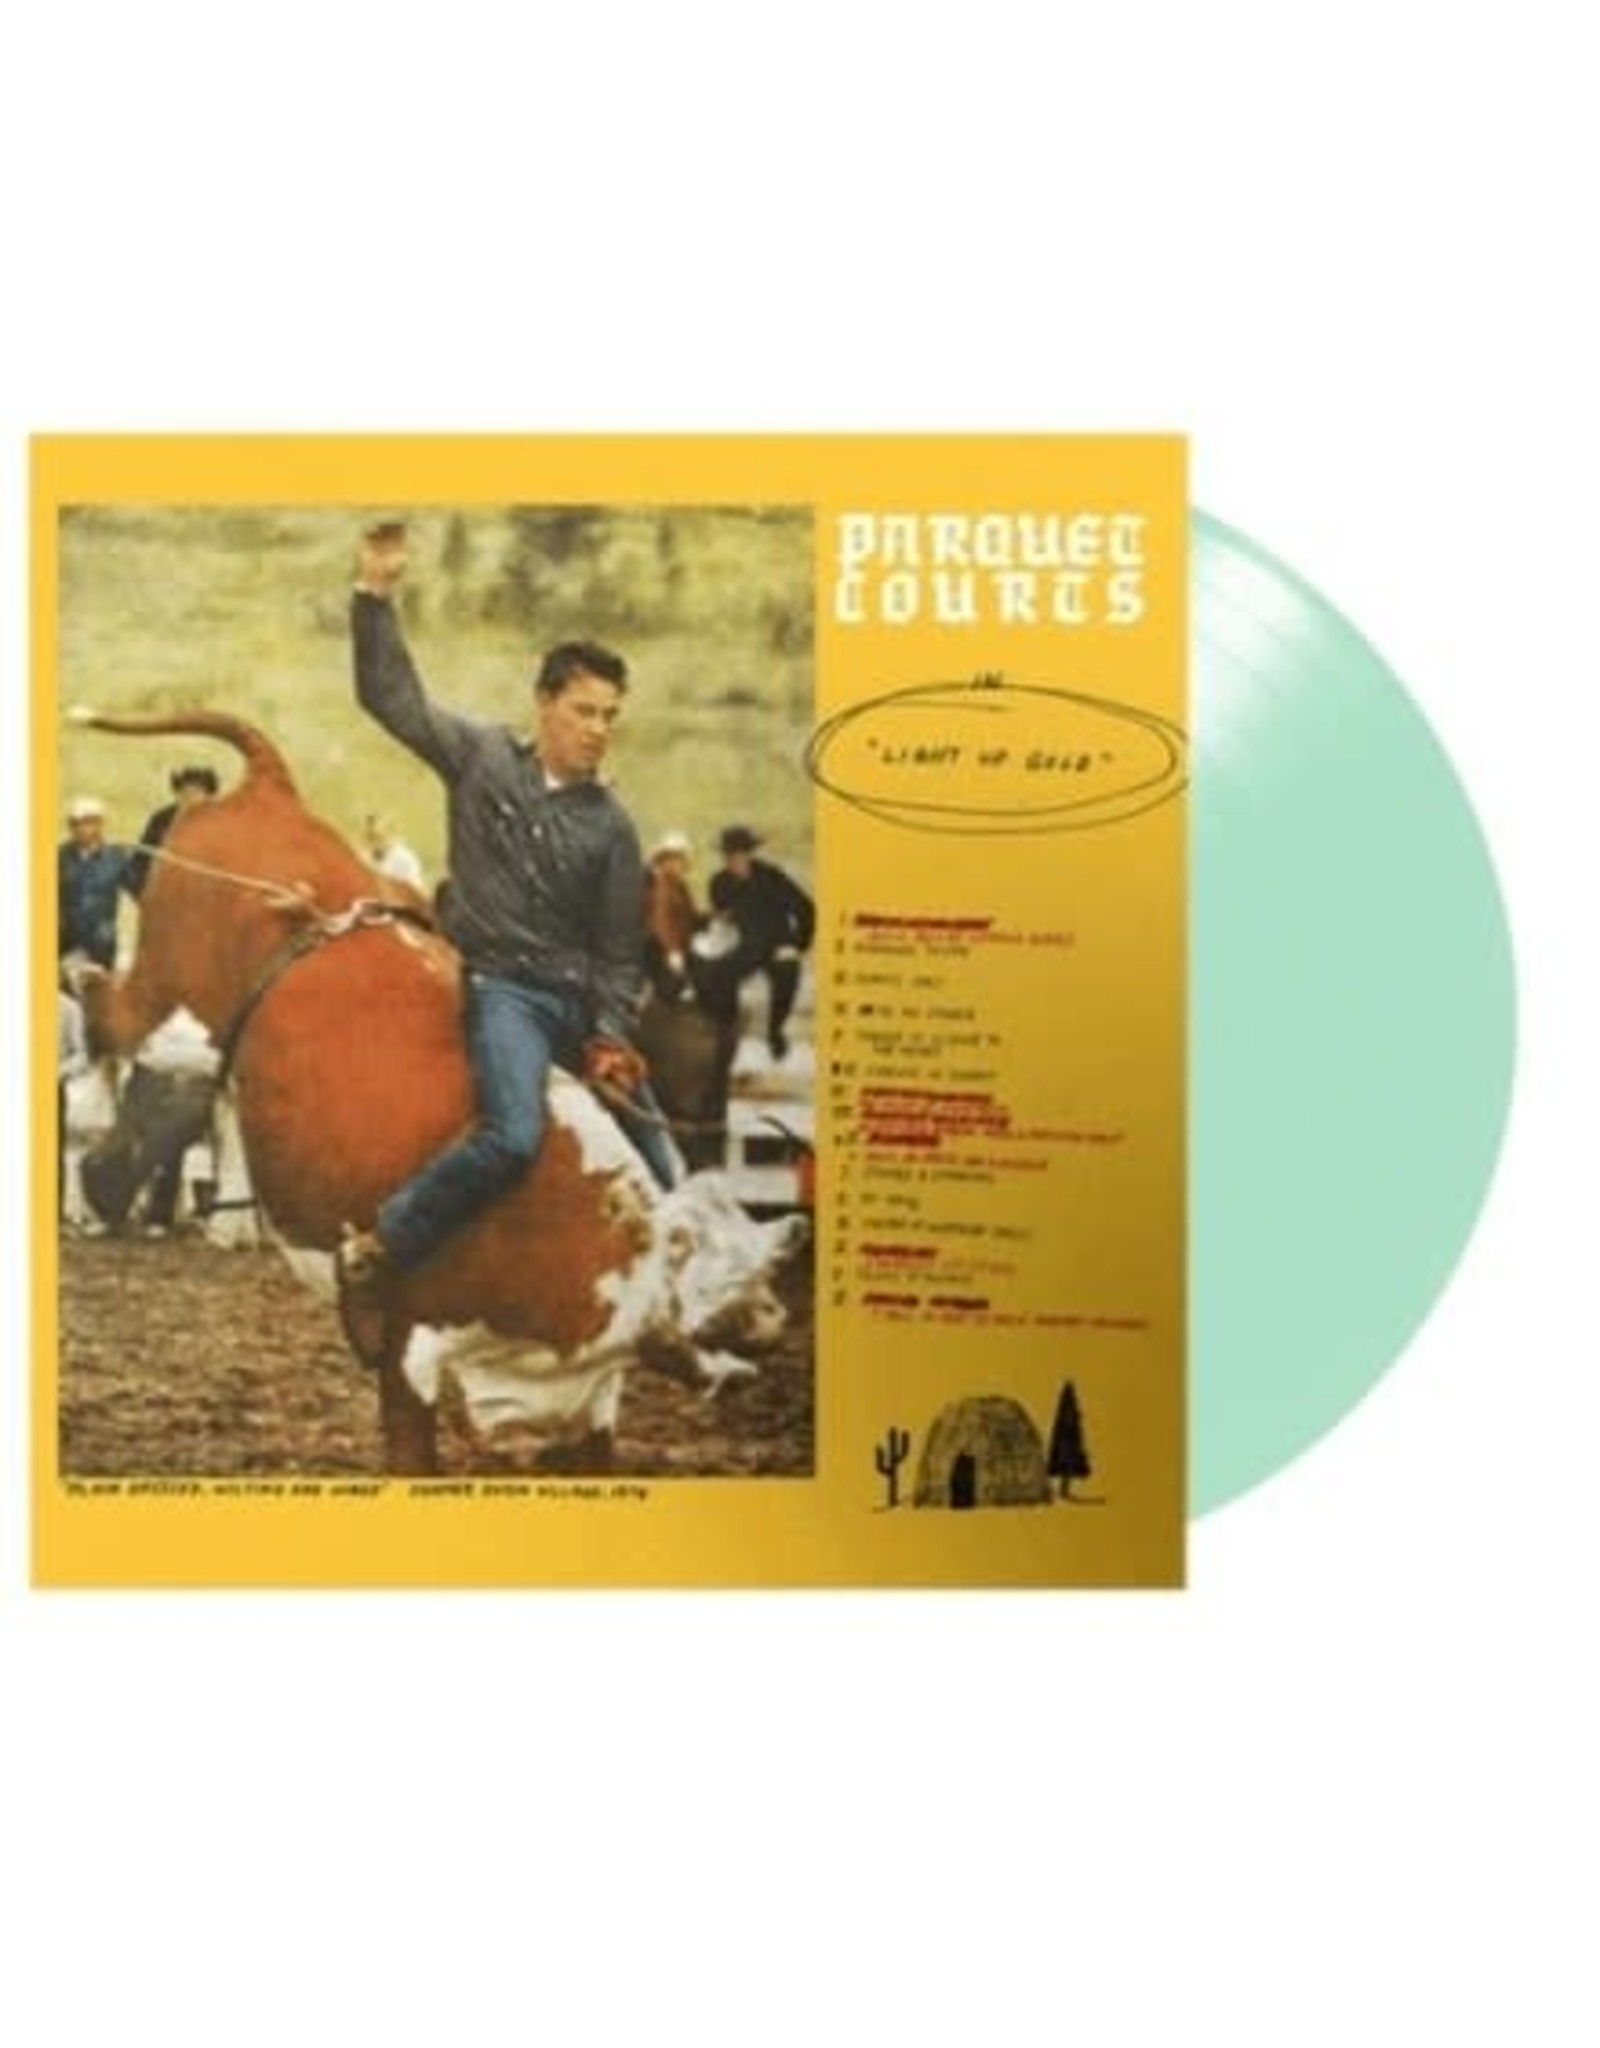 What's Your Rupture Parquet Courts: Light Up Gold (Glow in the Dark) LP